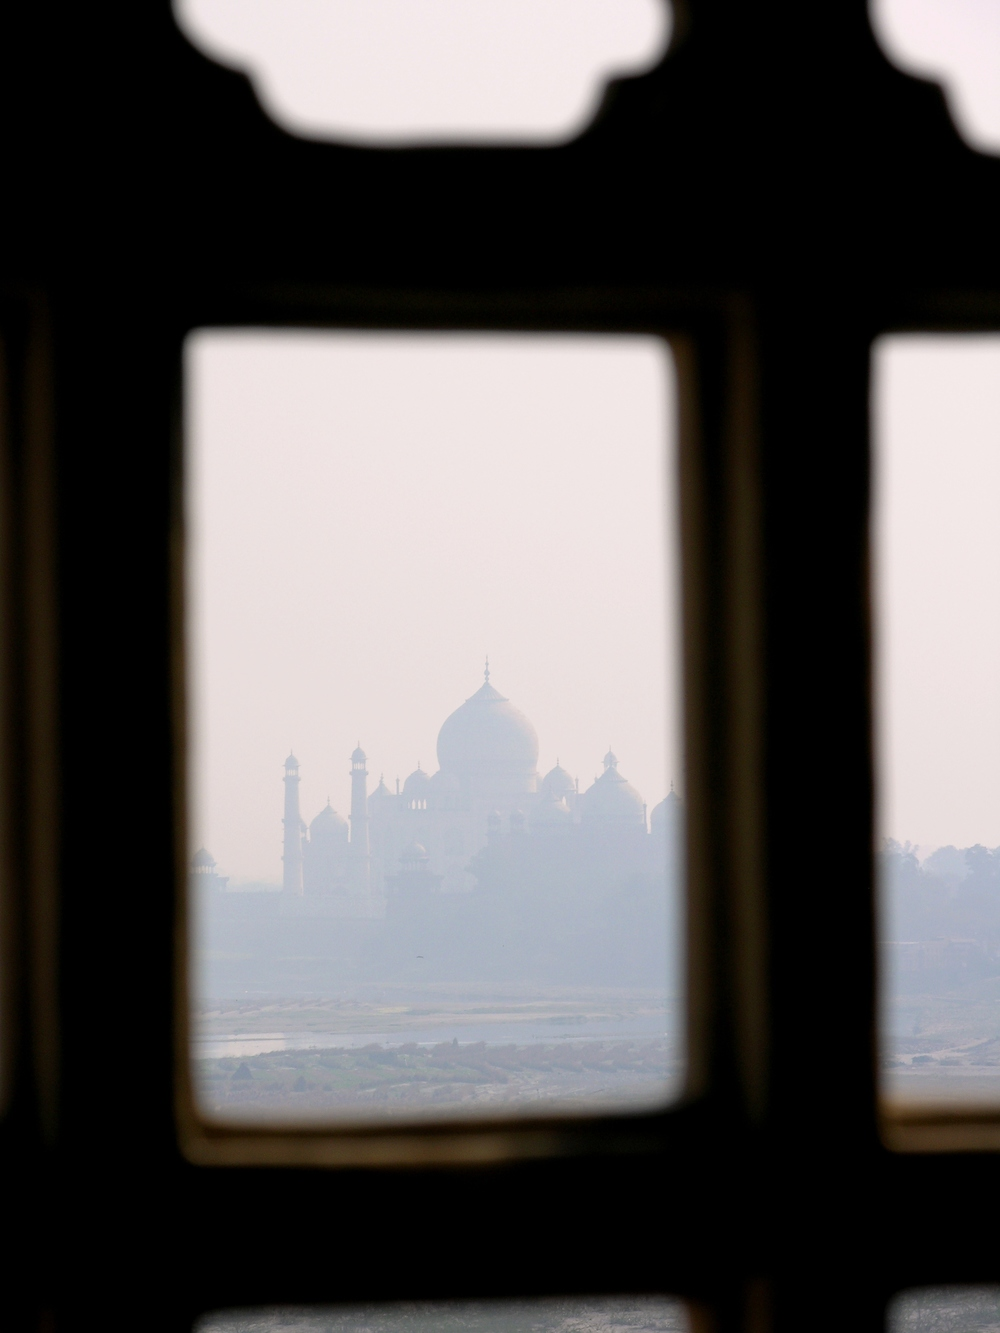 The Taj Mahal seen from the Agra Fort Photo credit: Sanjay Chatterji